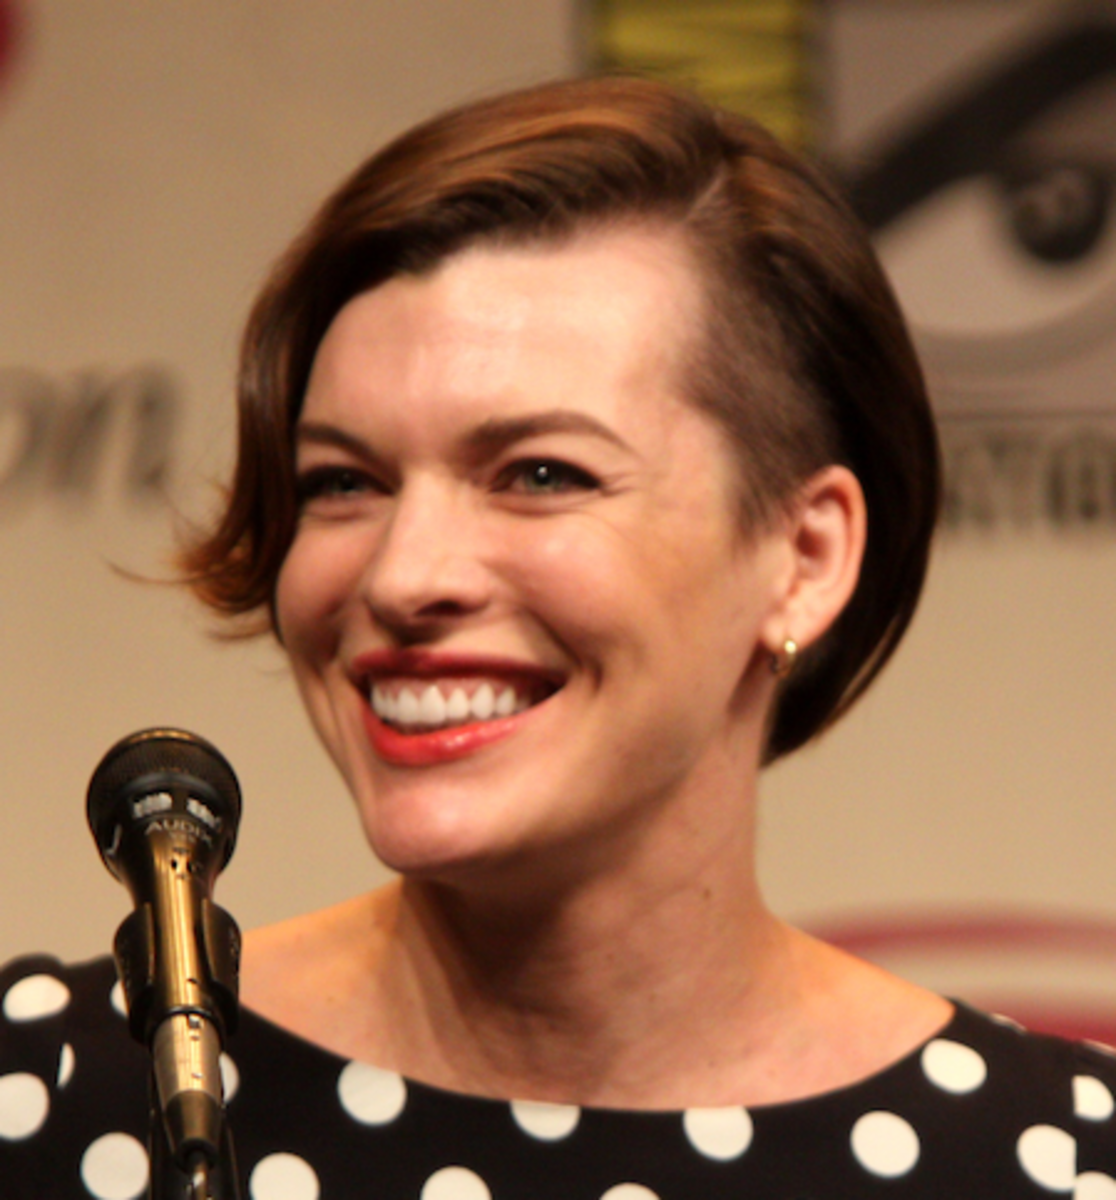 Milla Jovovich with a Side Undercut.